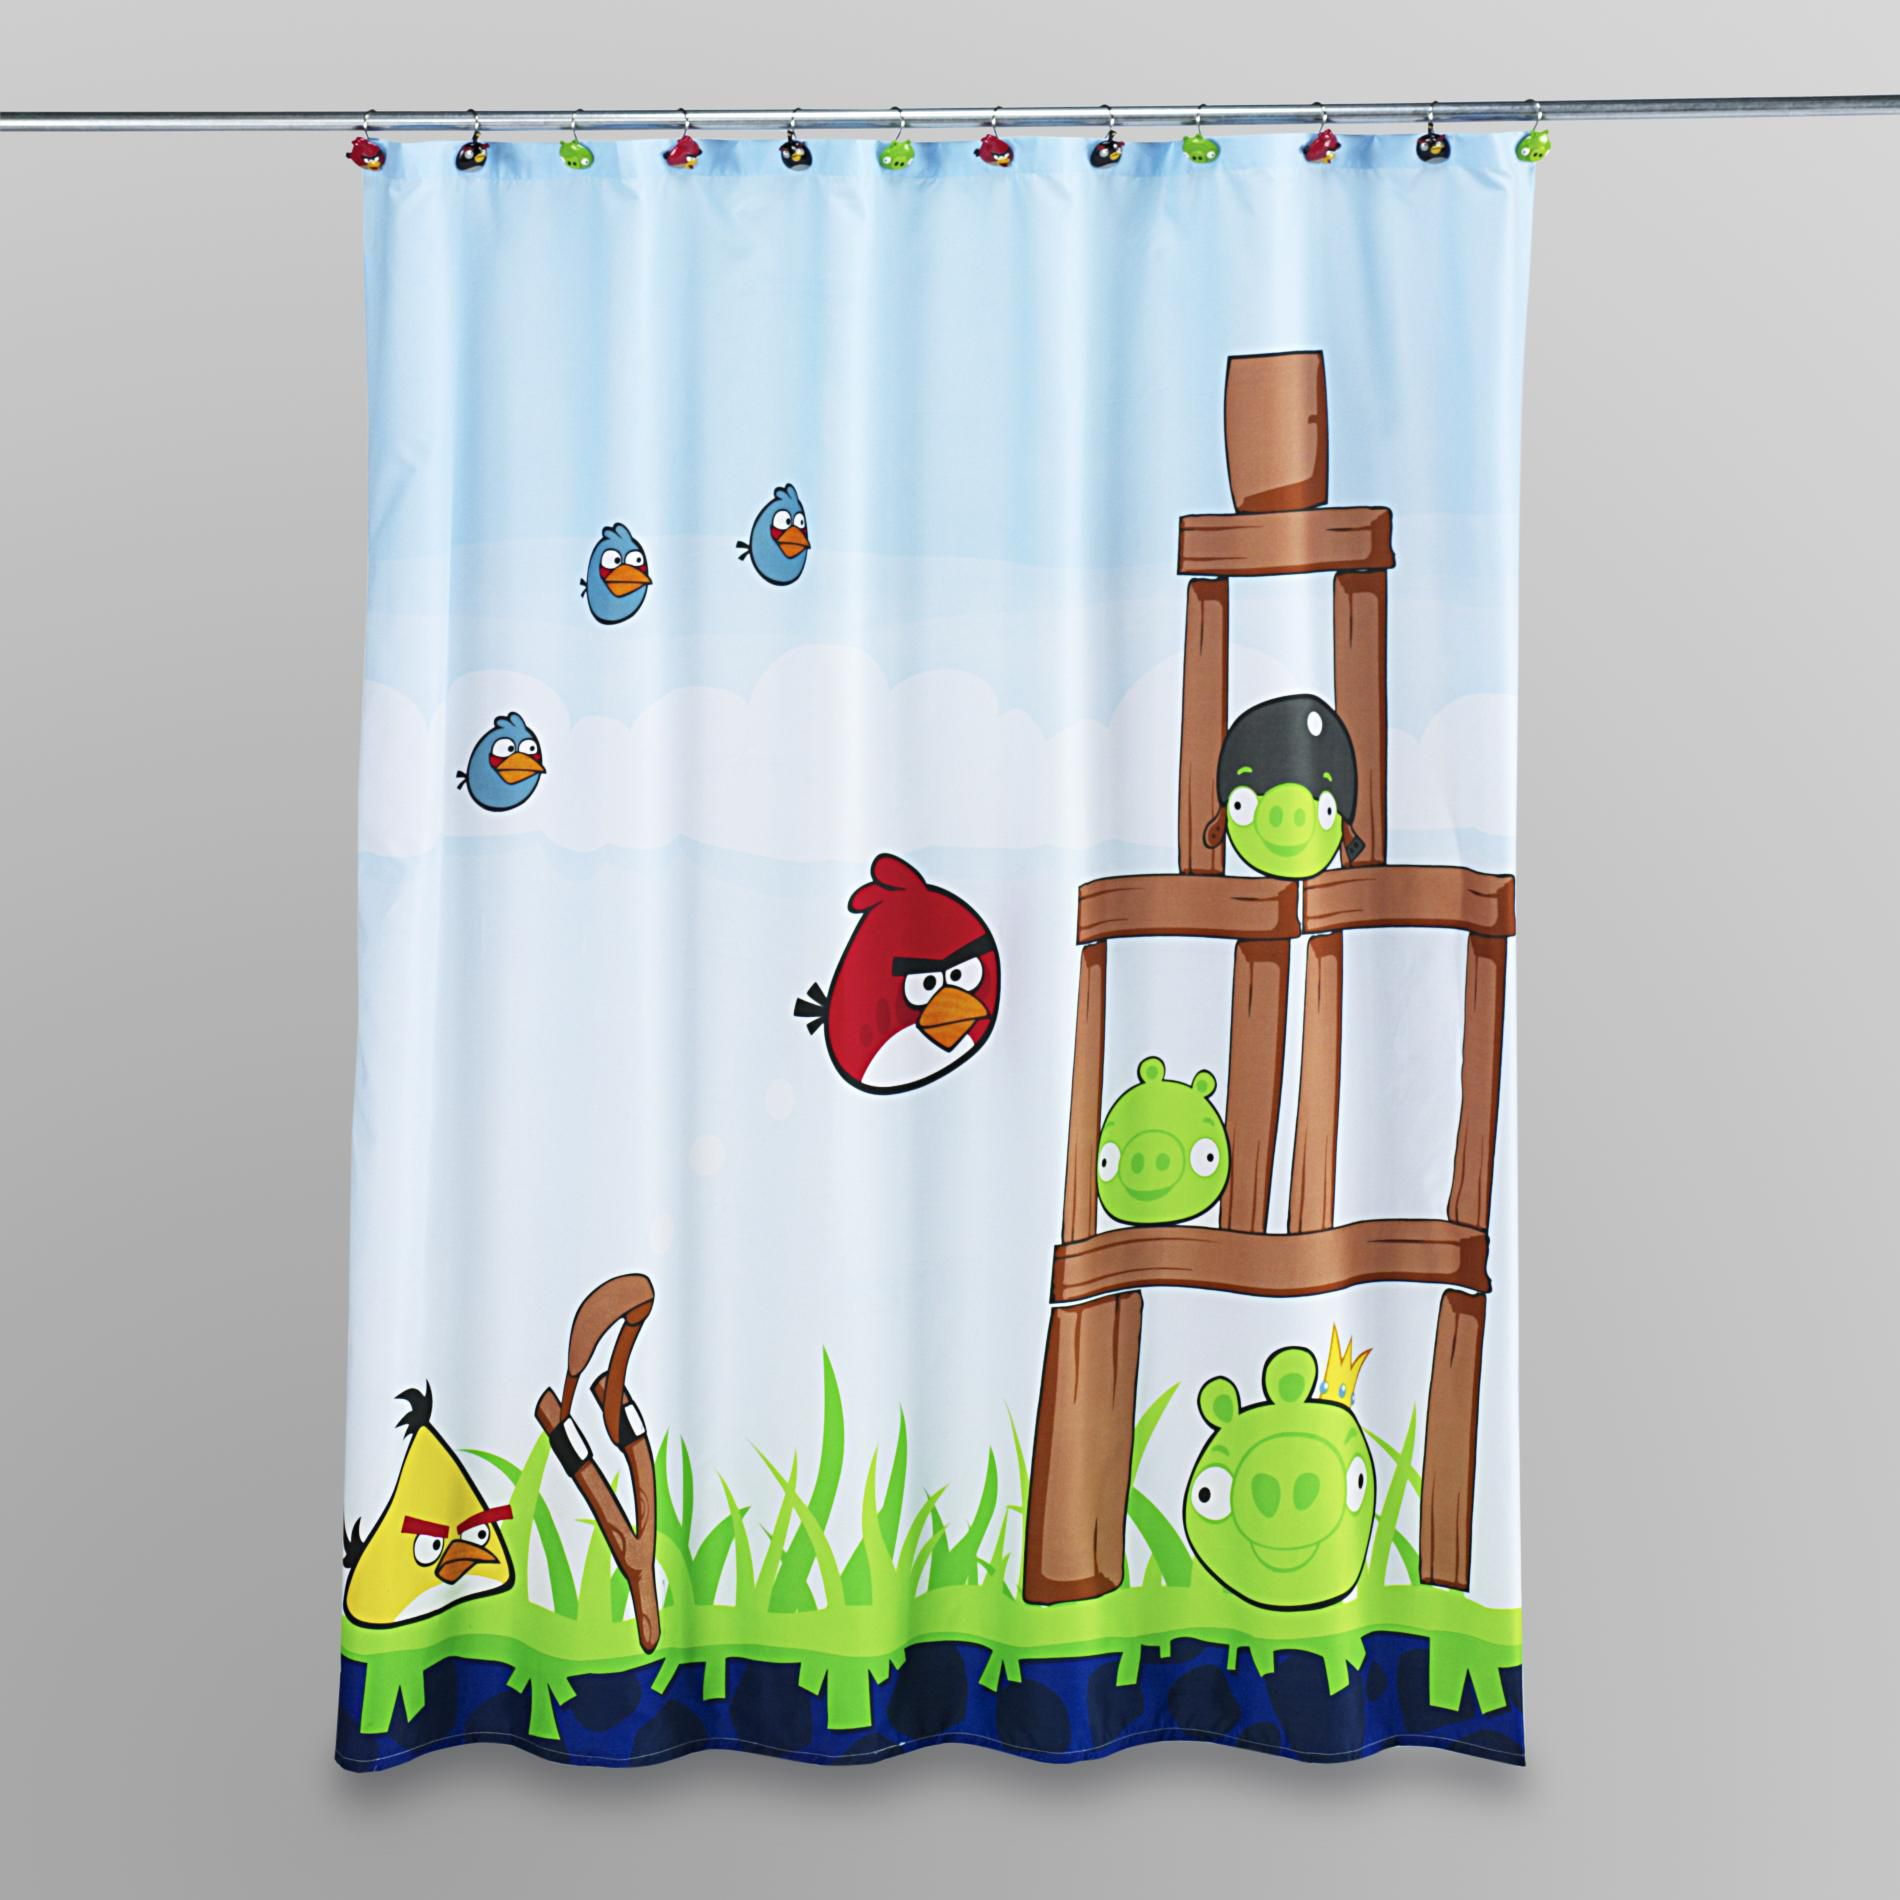 5-shower-curtains-ikea-shower-curtains-for-kids-bathroom-shower-curtains-for-kids-bath-shower-curtains-for-kids-shower-curtains-for-kids-bathroom-shower-curtains-for-kids-bath-shower-curtain-for